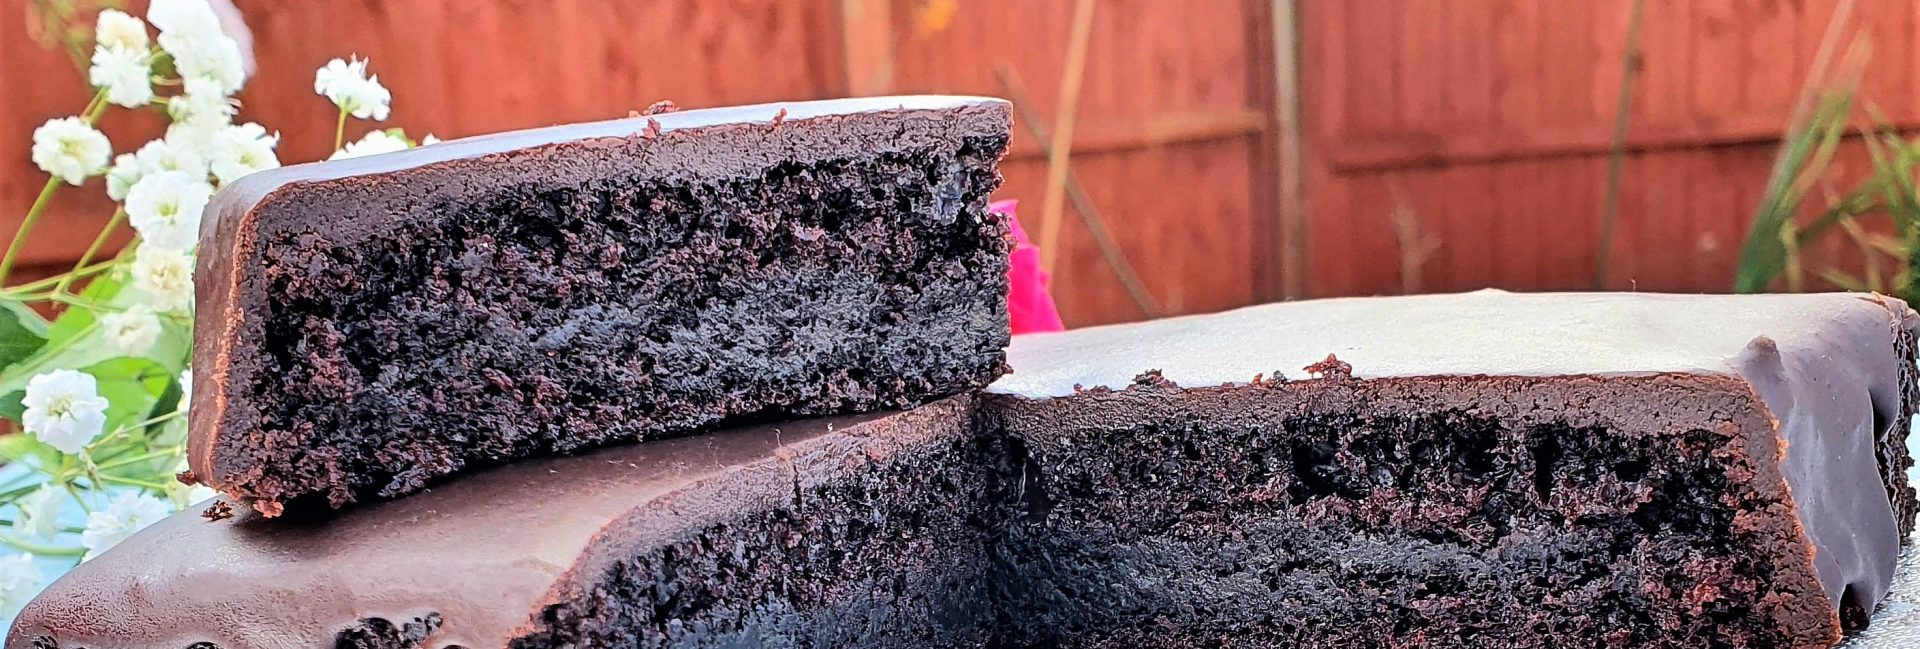 Chocolate Cake Slices